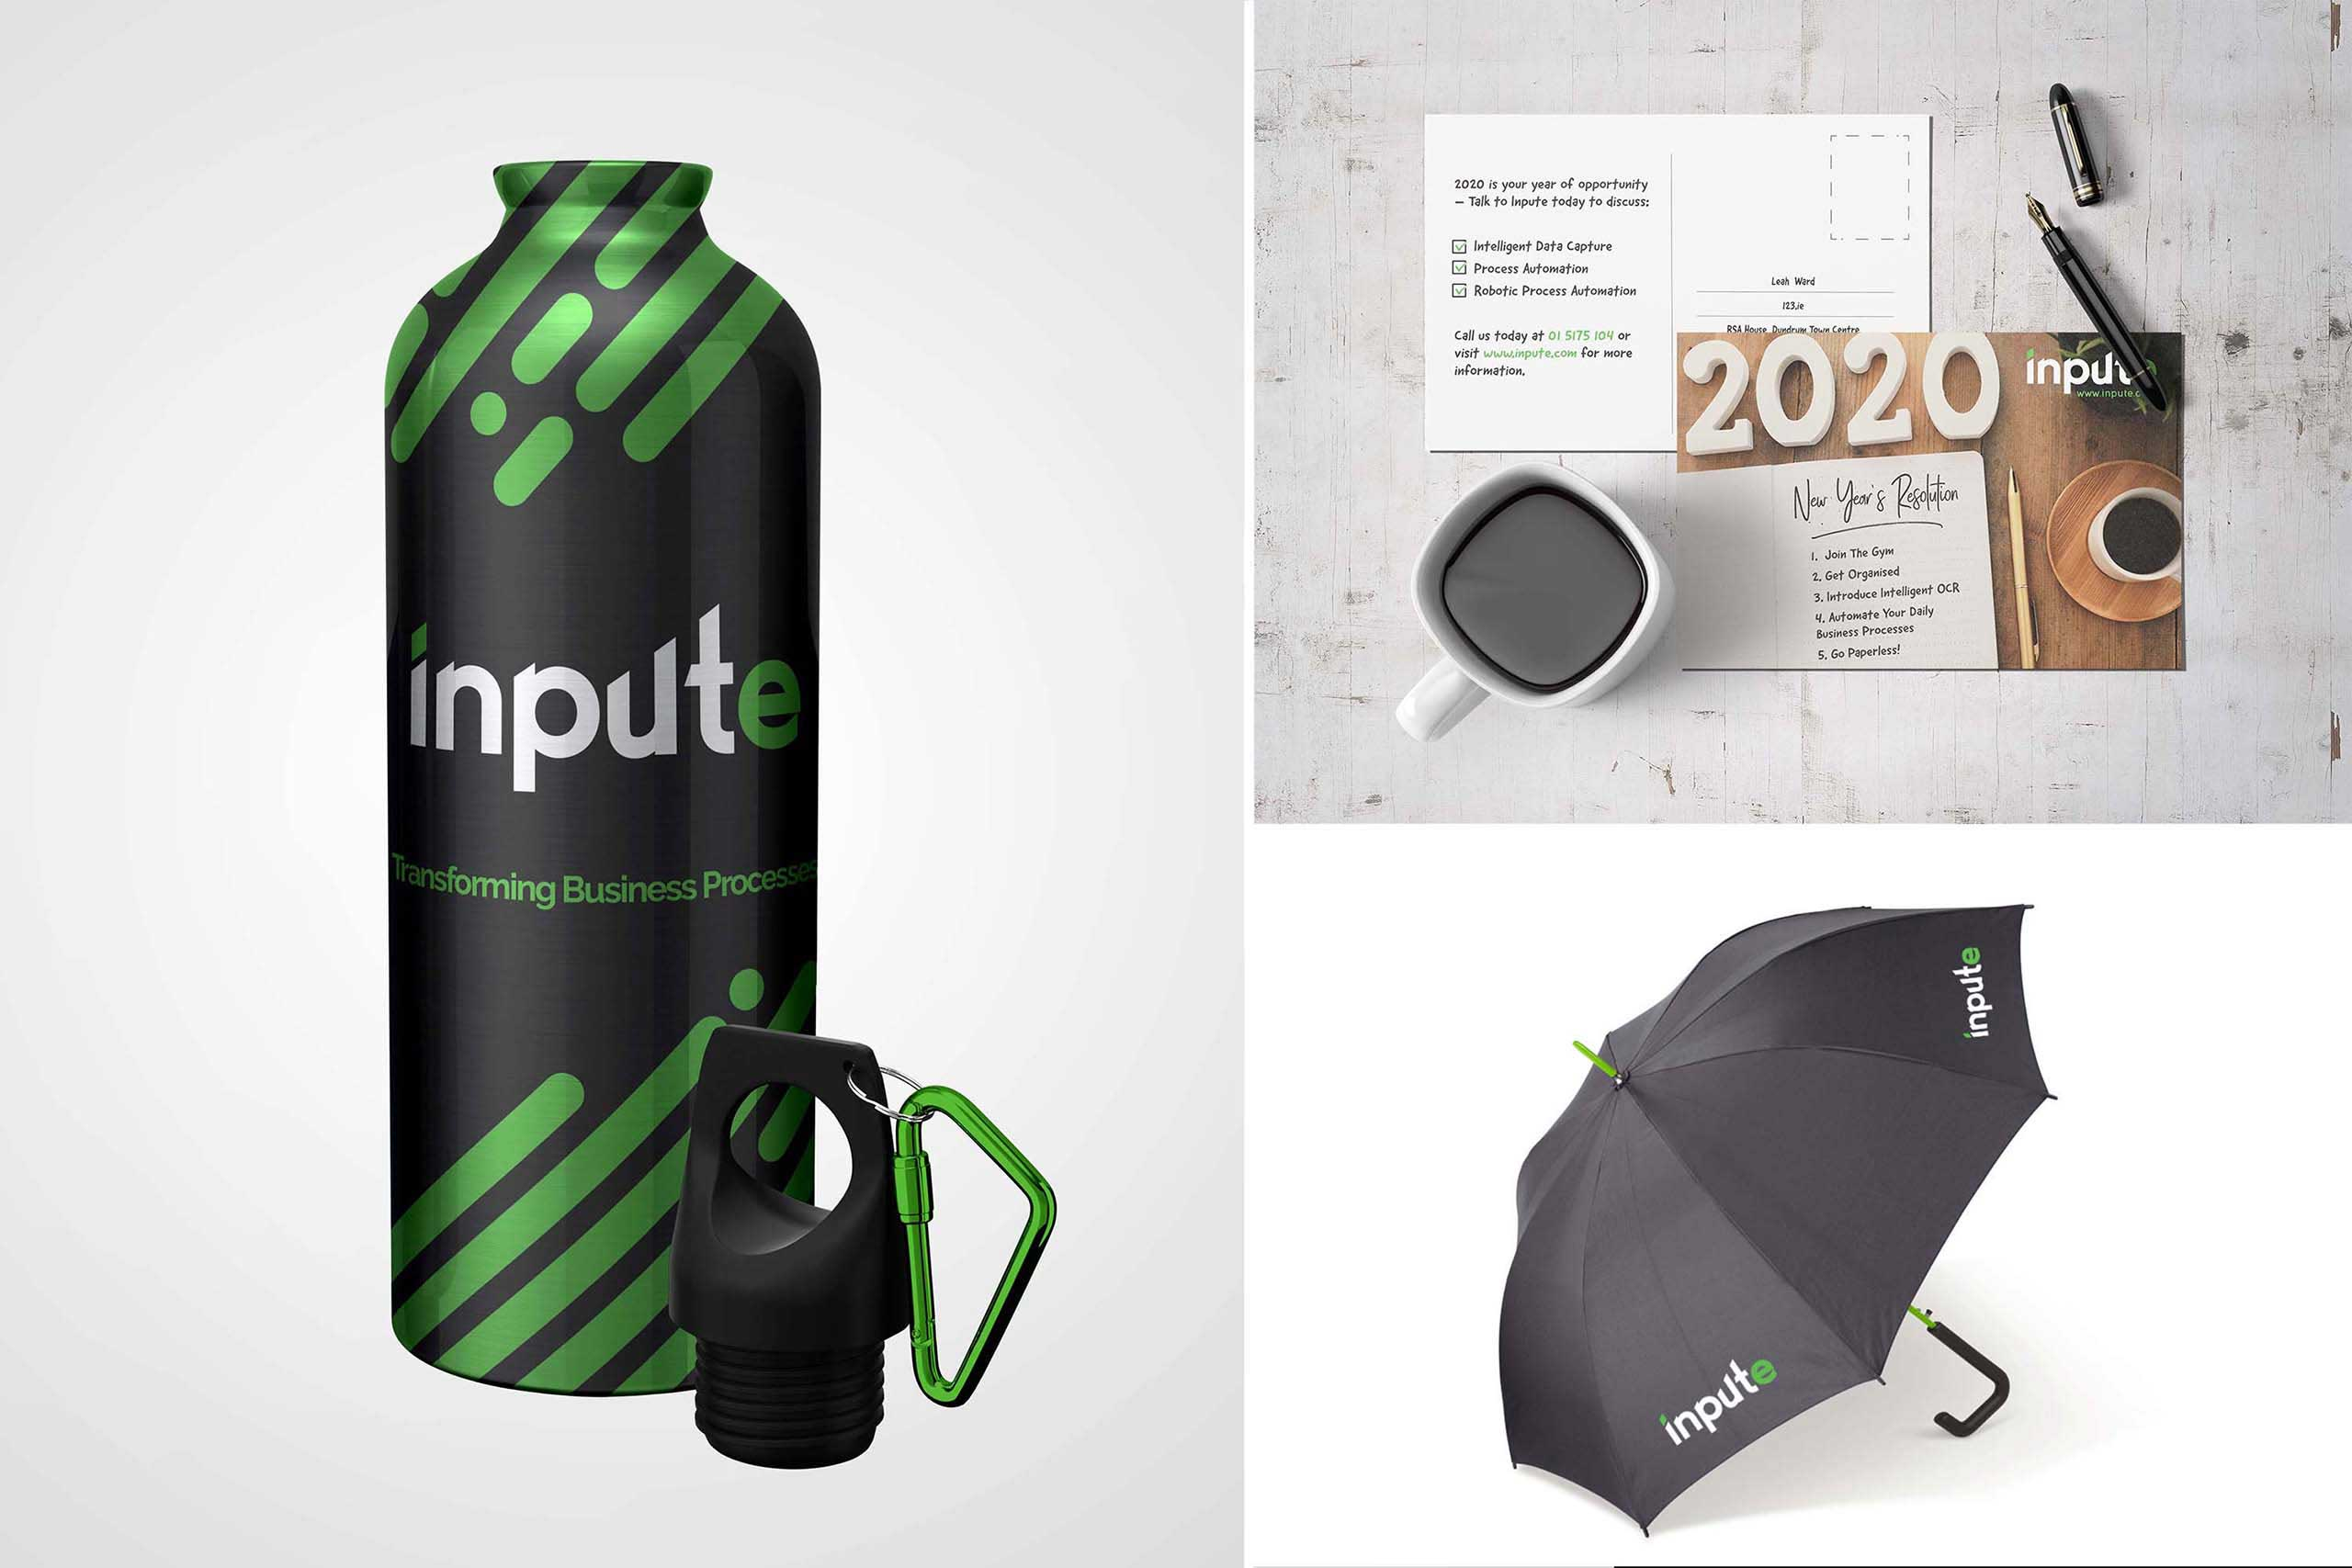 Inpute Branded Materials